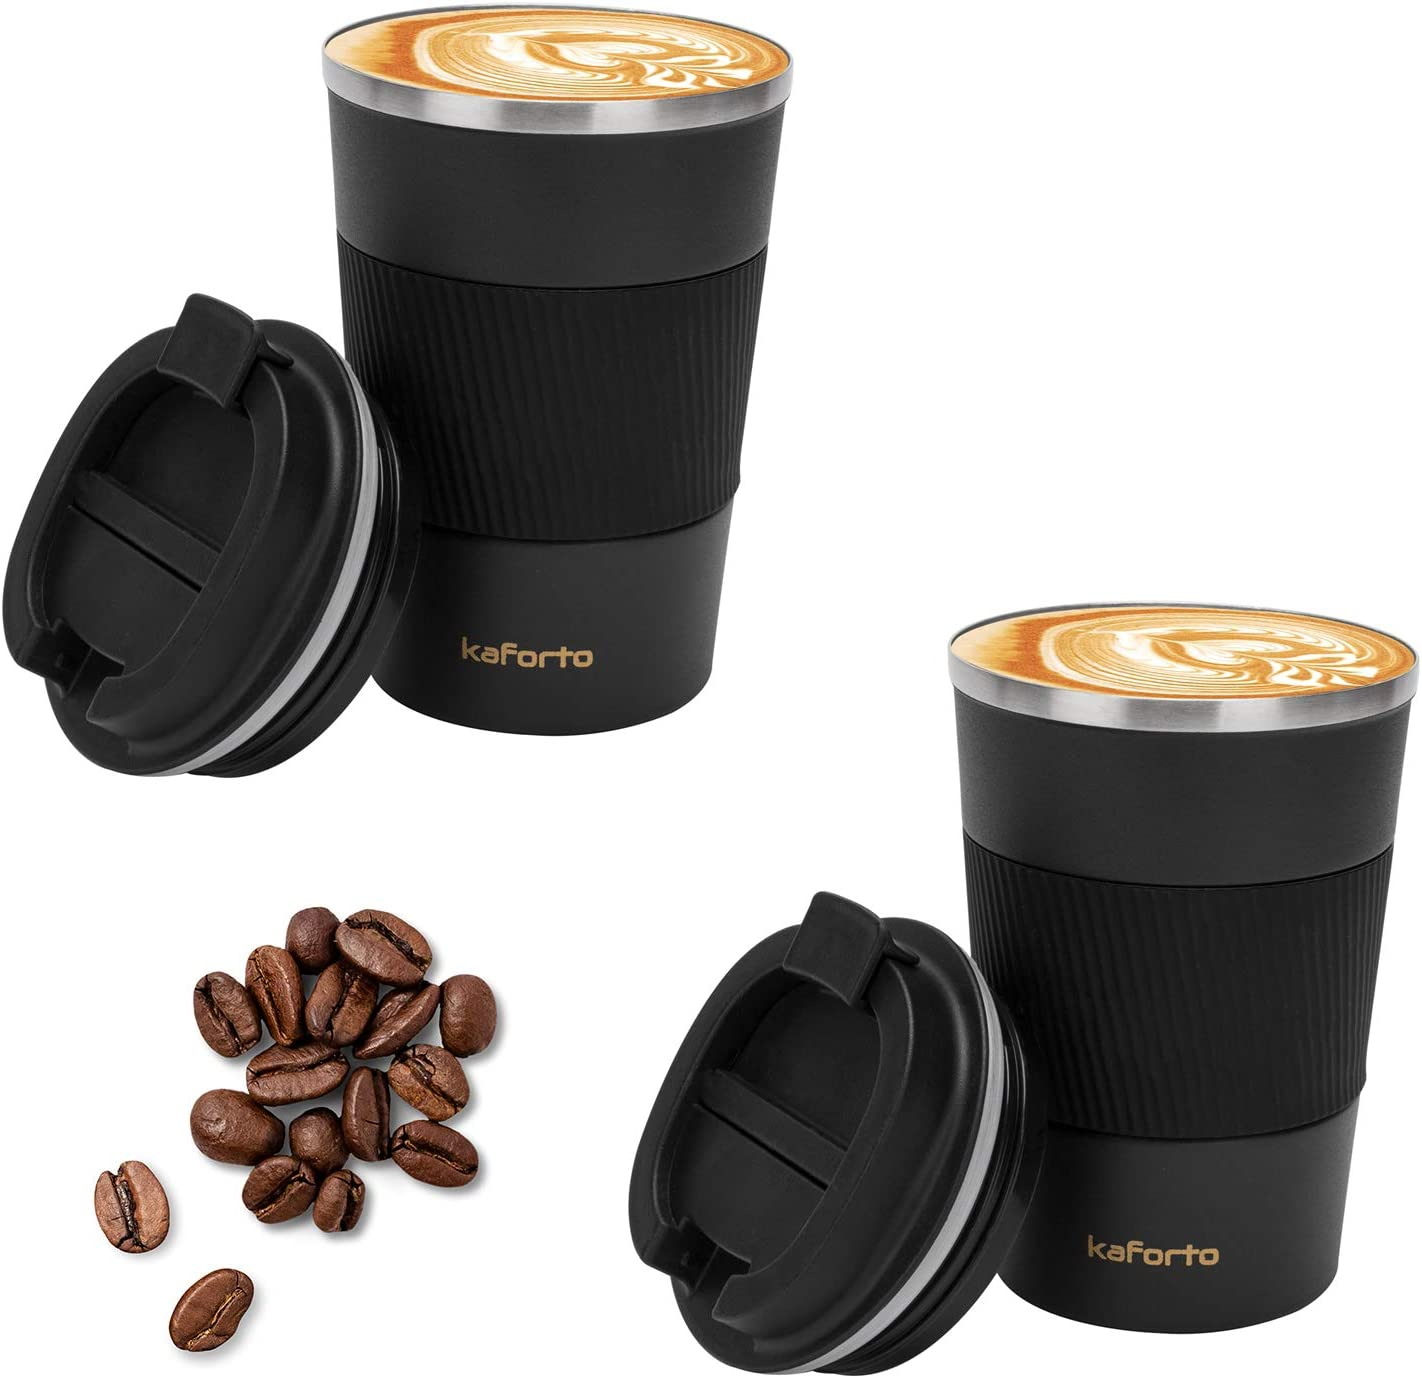 Coffee Travel Mug Stainless Steel Insulated Coffee Cup Double Wall Vacuum Insulation Coffee Tumbler with Leakproof Screw Lid Reusable Thermal Cup for Hot / Iced Beverage -380ml/12oz, Black,2 Pack